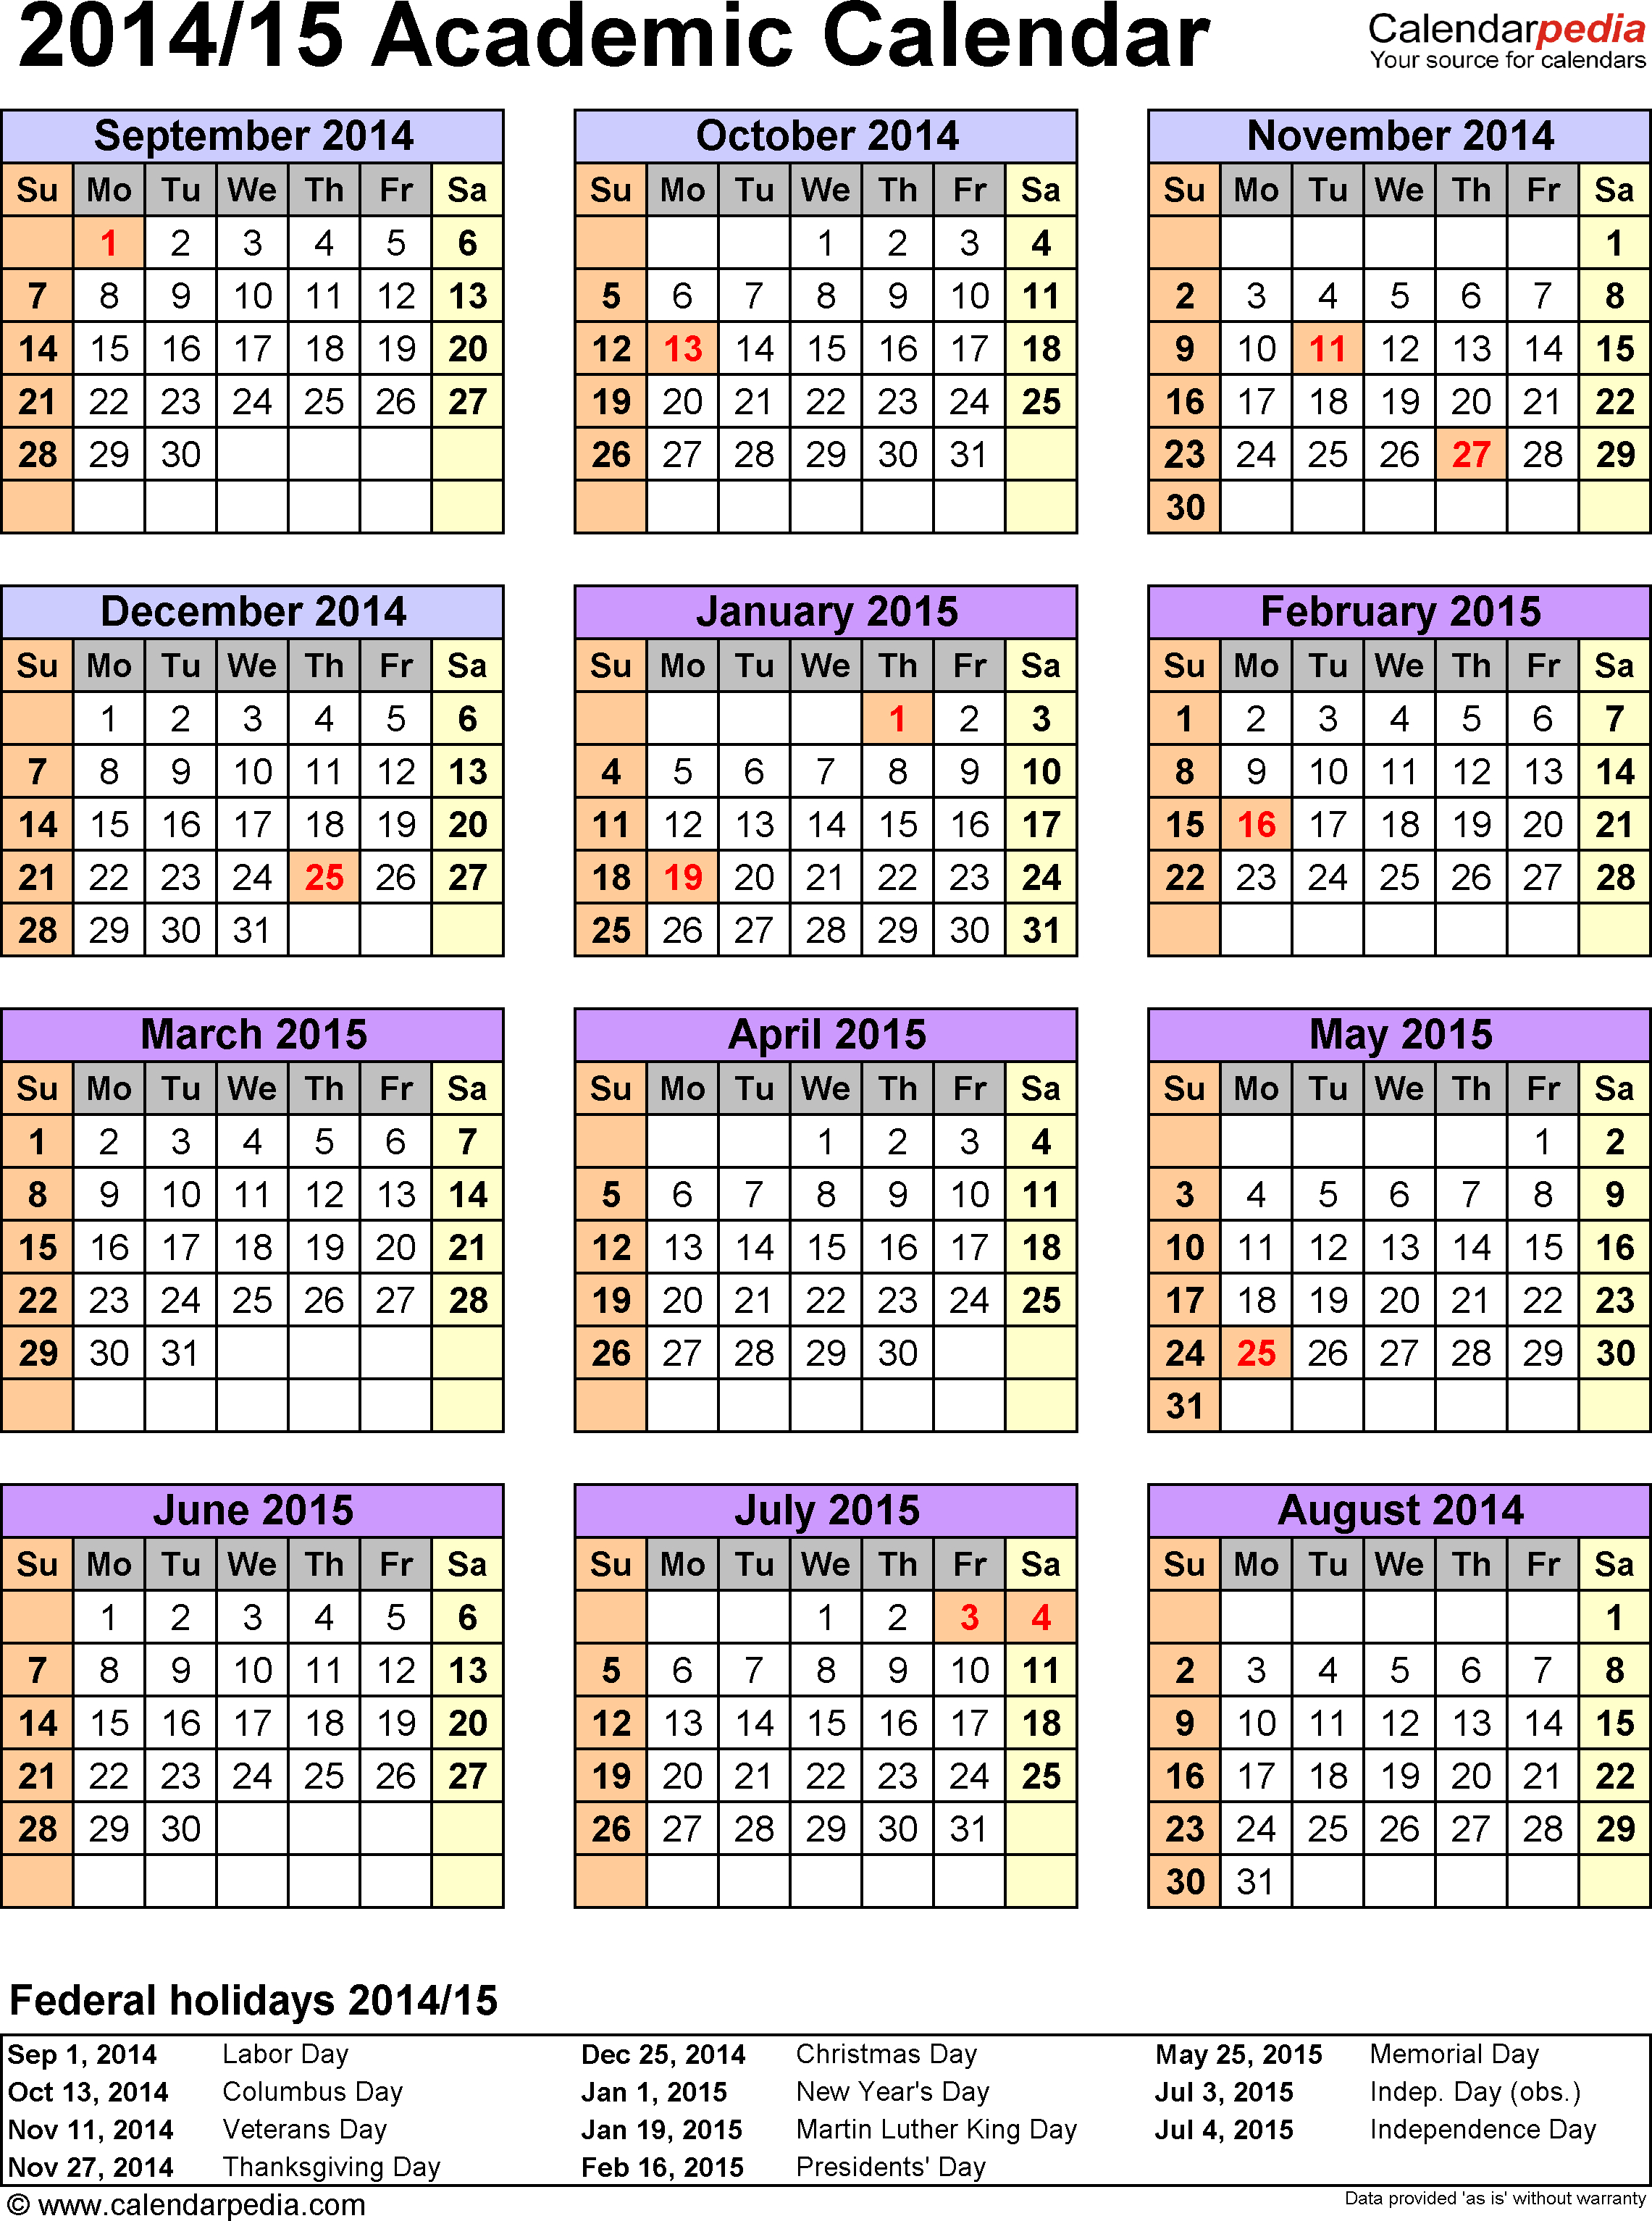 Academic Calendar-Cds | Department Of Education throughout 18 School Calendar Template